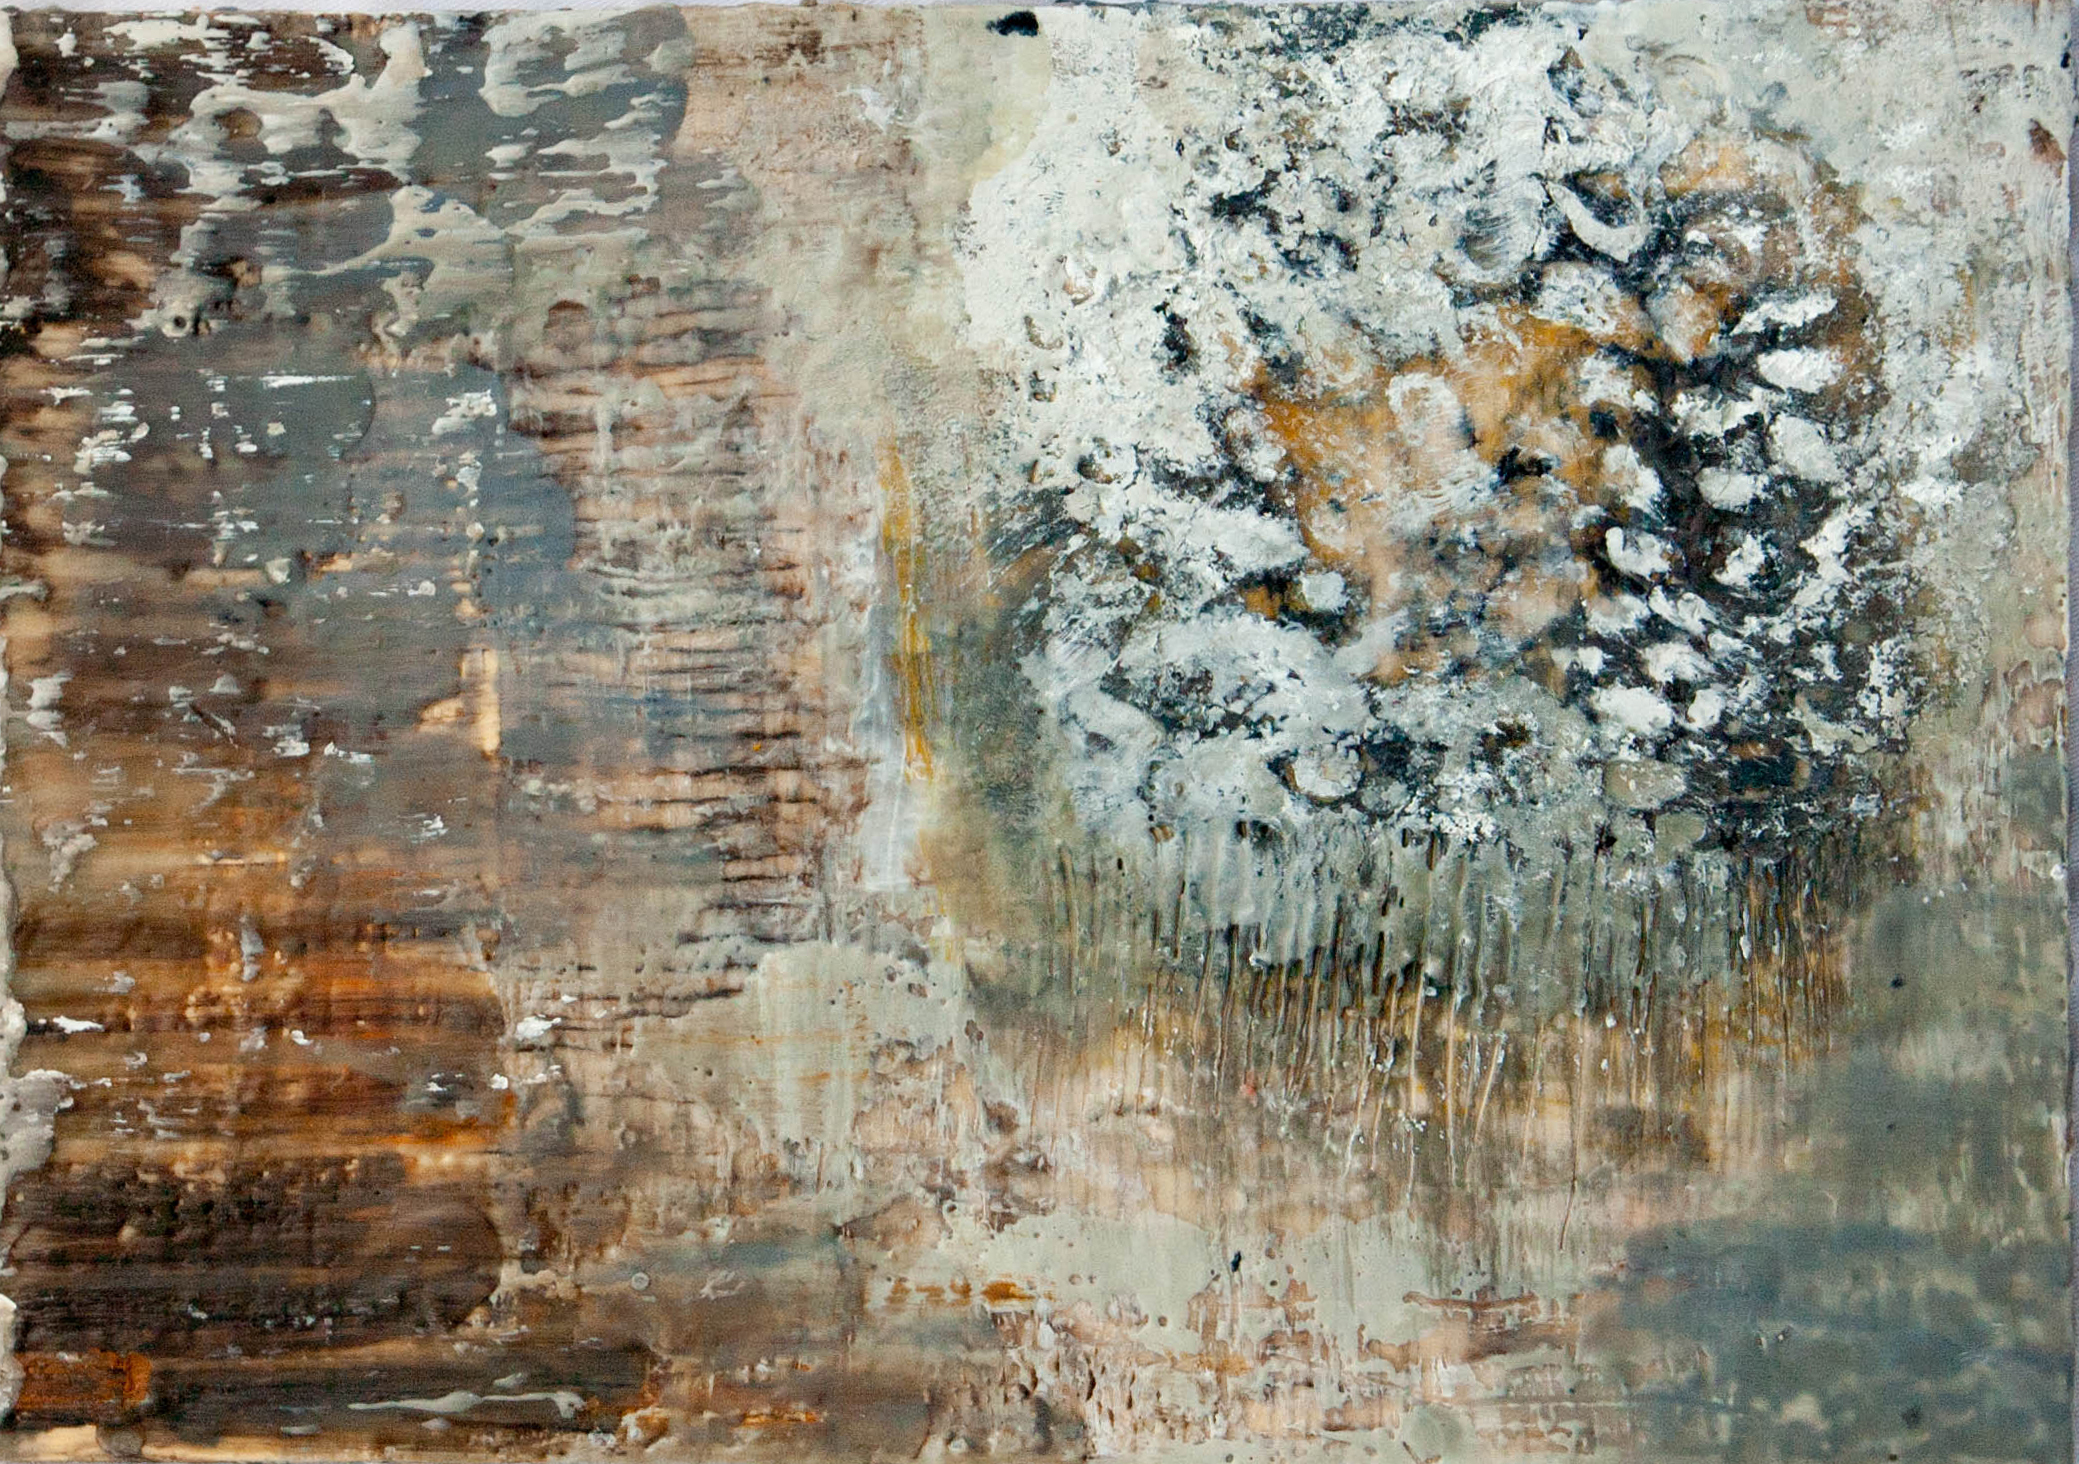 Megan Bostic - Almost Always (detail) - encaustic on wood - 39 x 8.5: 2013 300.00